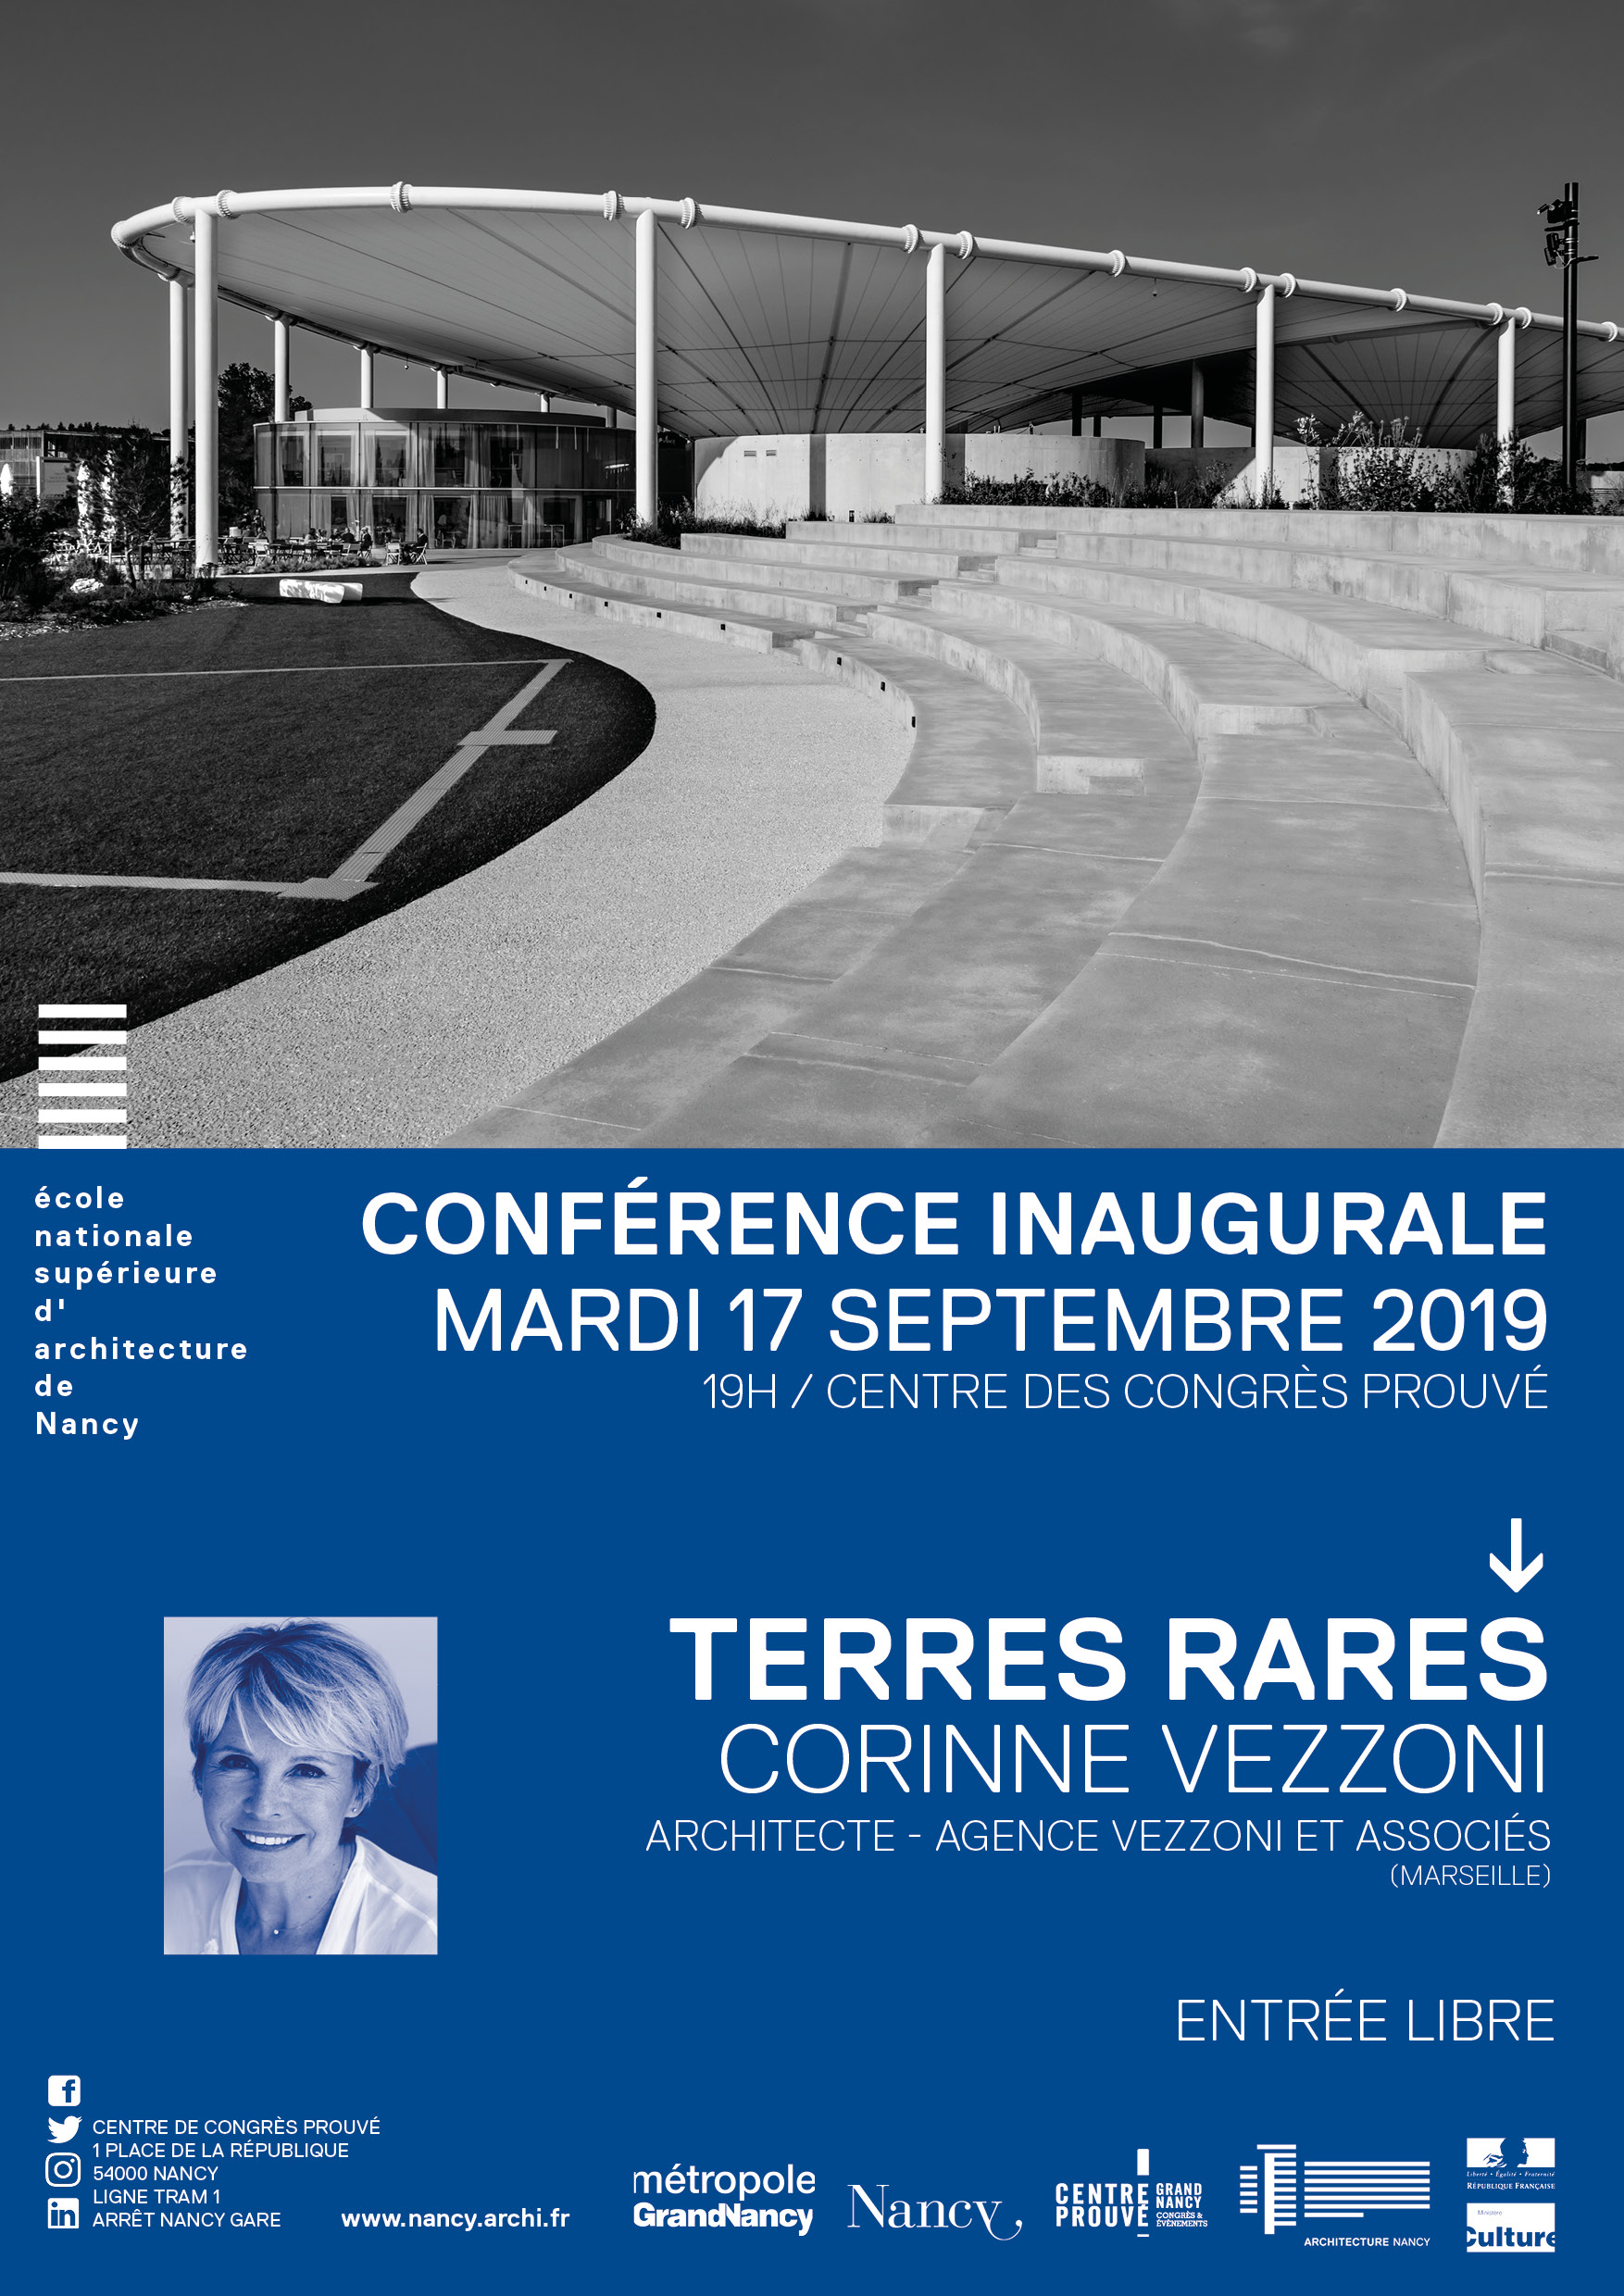 CONFÉRENCE INAUGURALE - TERRES RARES